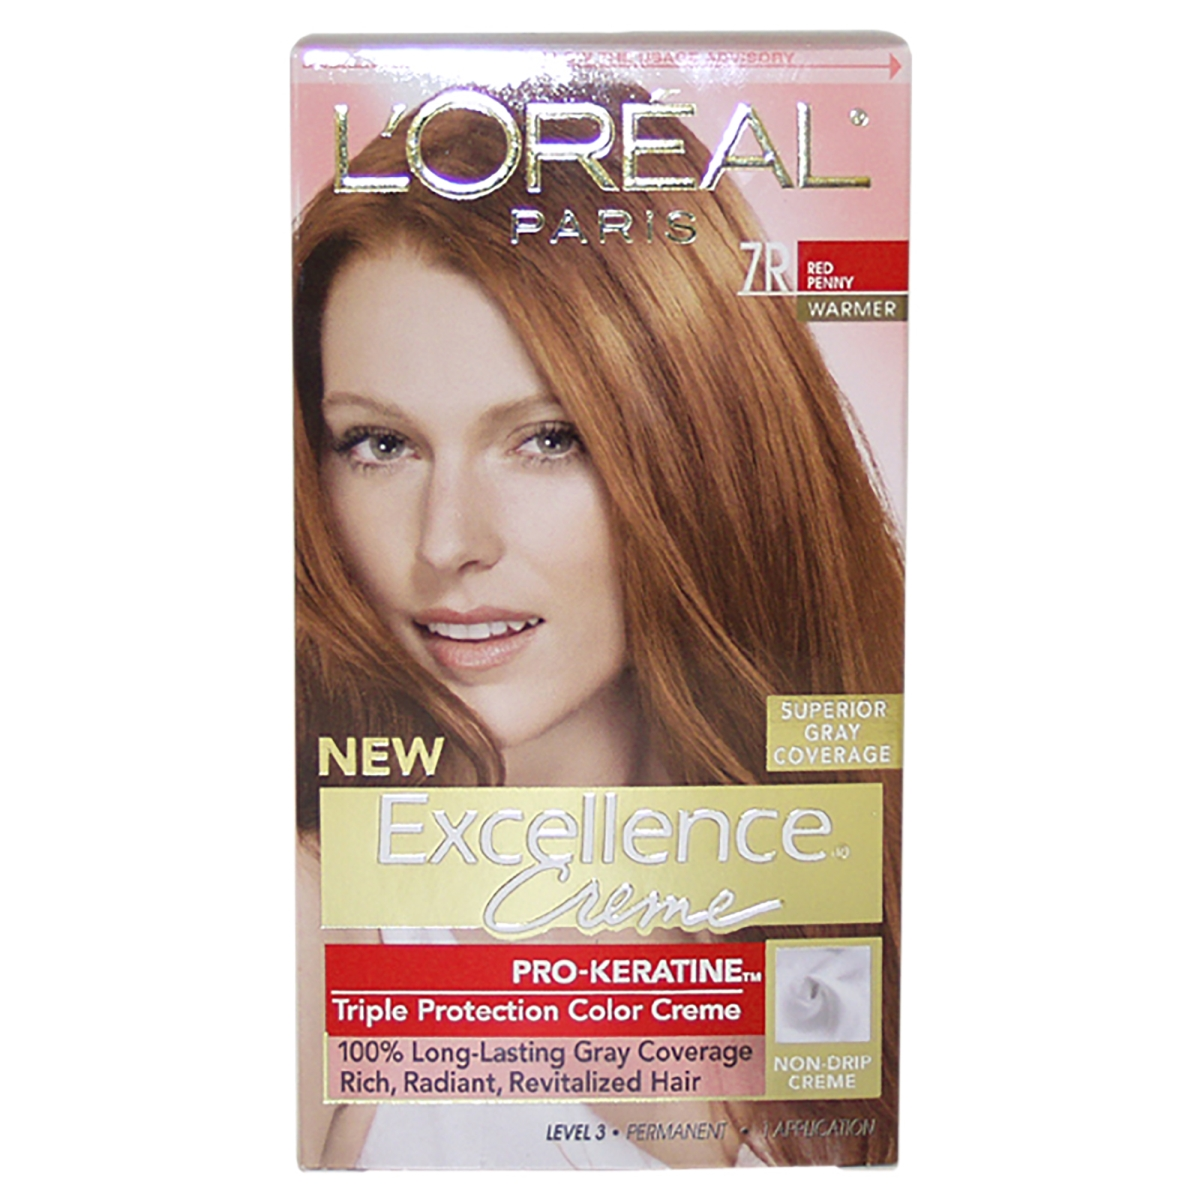 LOreal Paris U-HC-3483 Excellence Creme Pro - Keratine at 7R Red Penny - Warmer 1 Application Hair Color for Unisex